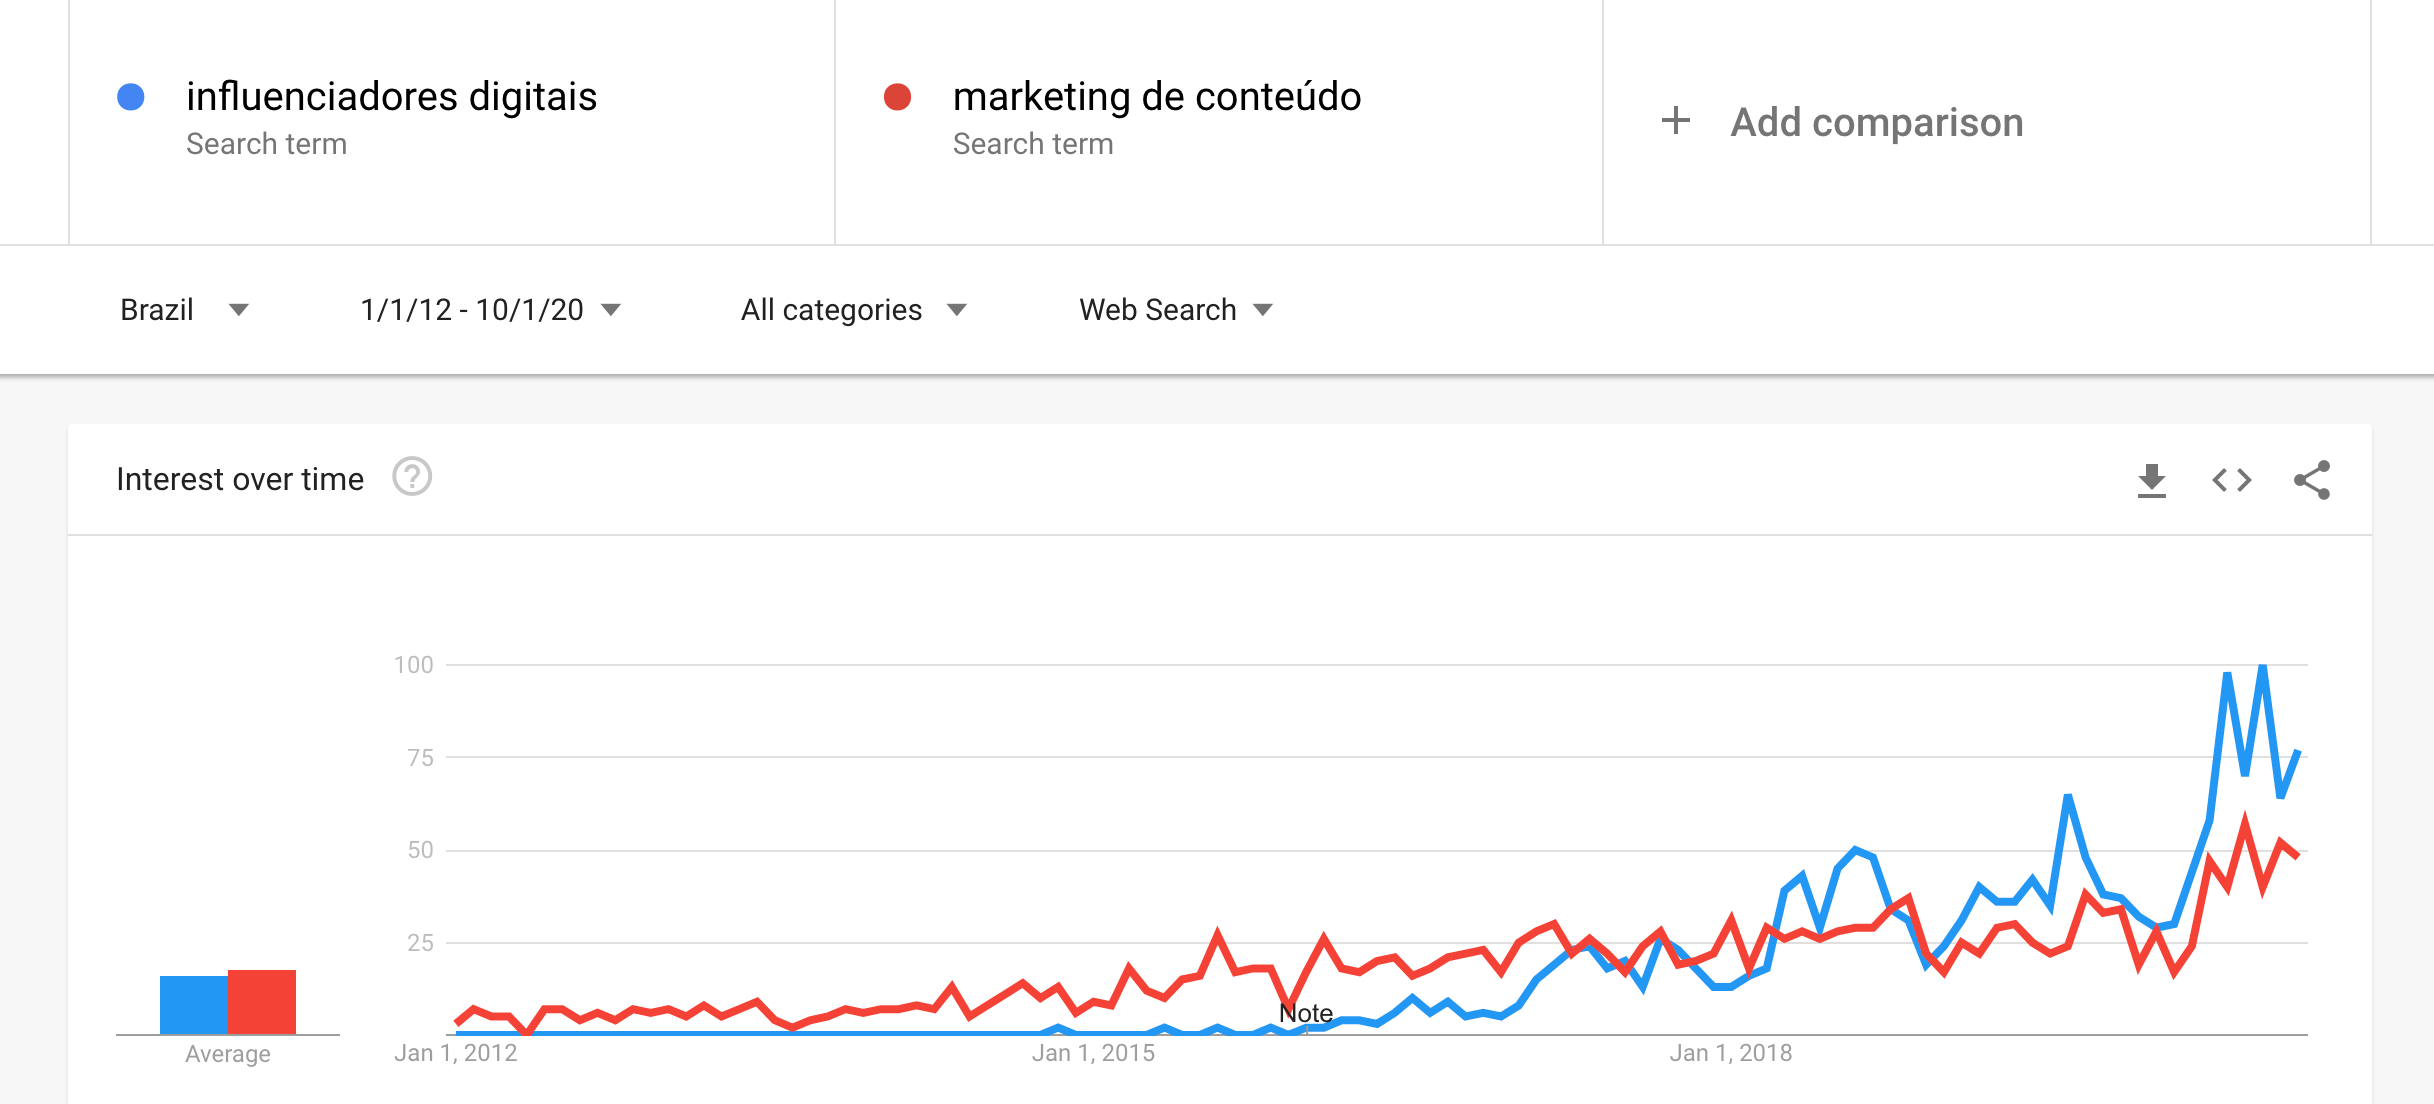 influenciadores digitais e marketing de conteúdo trends